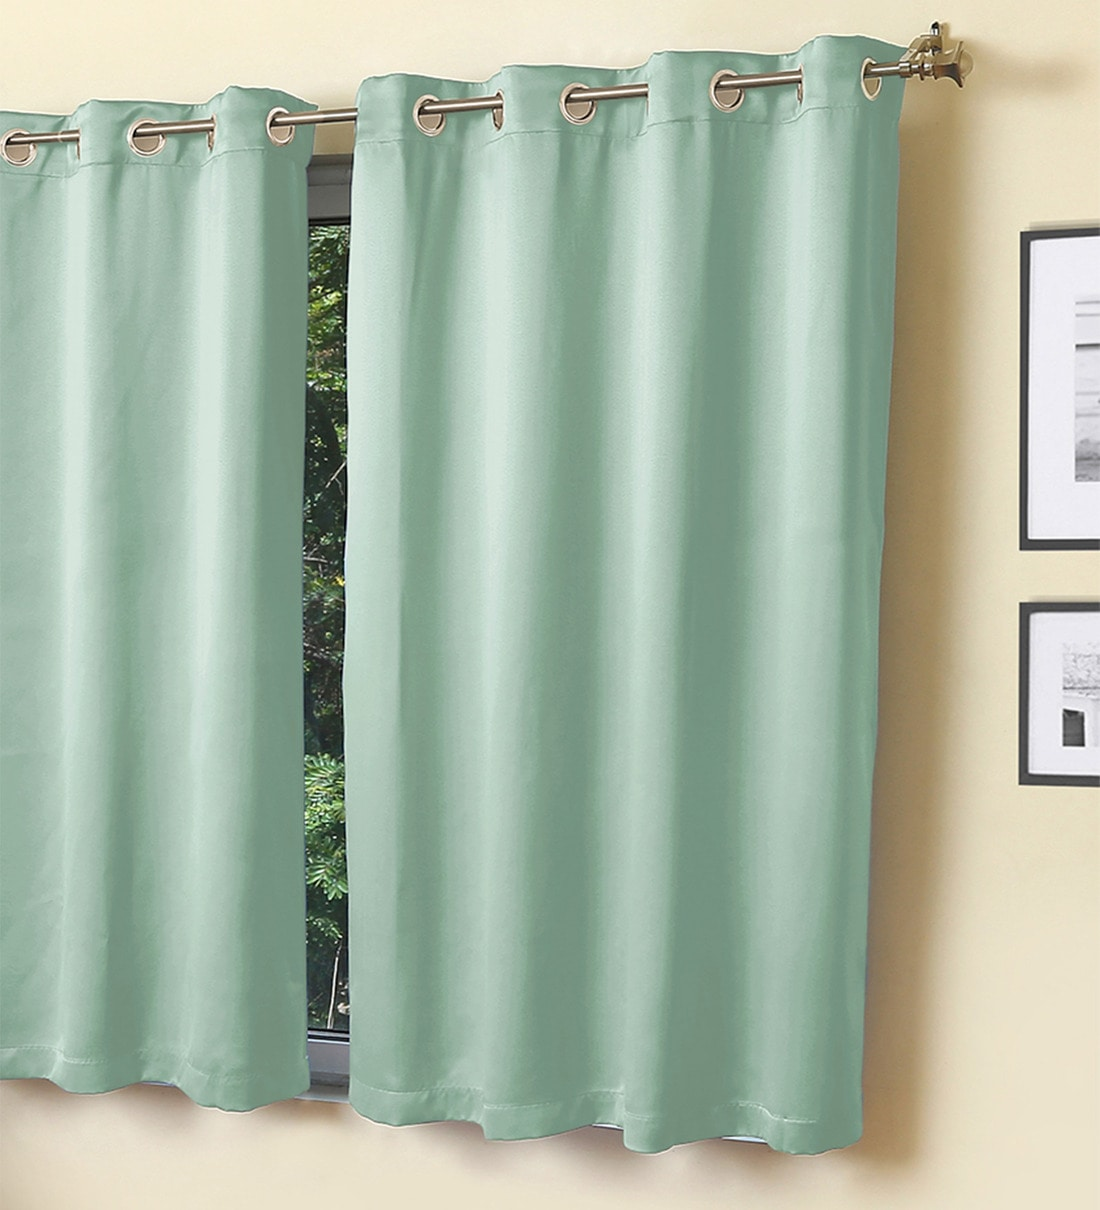 Buy Erba Blackout Mint Green Colour 5 Feet Set Of 1 Window Curtain By Rosara Home Online Solid Colour Window Curtains Furnishings Home Decor Pepperfry Product